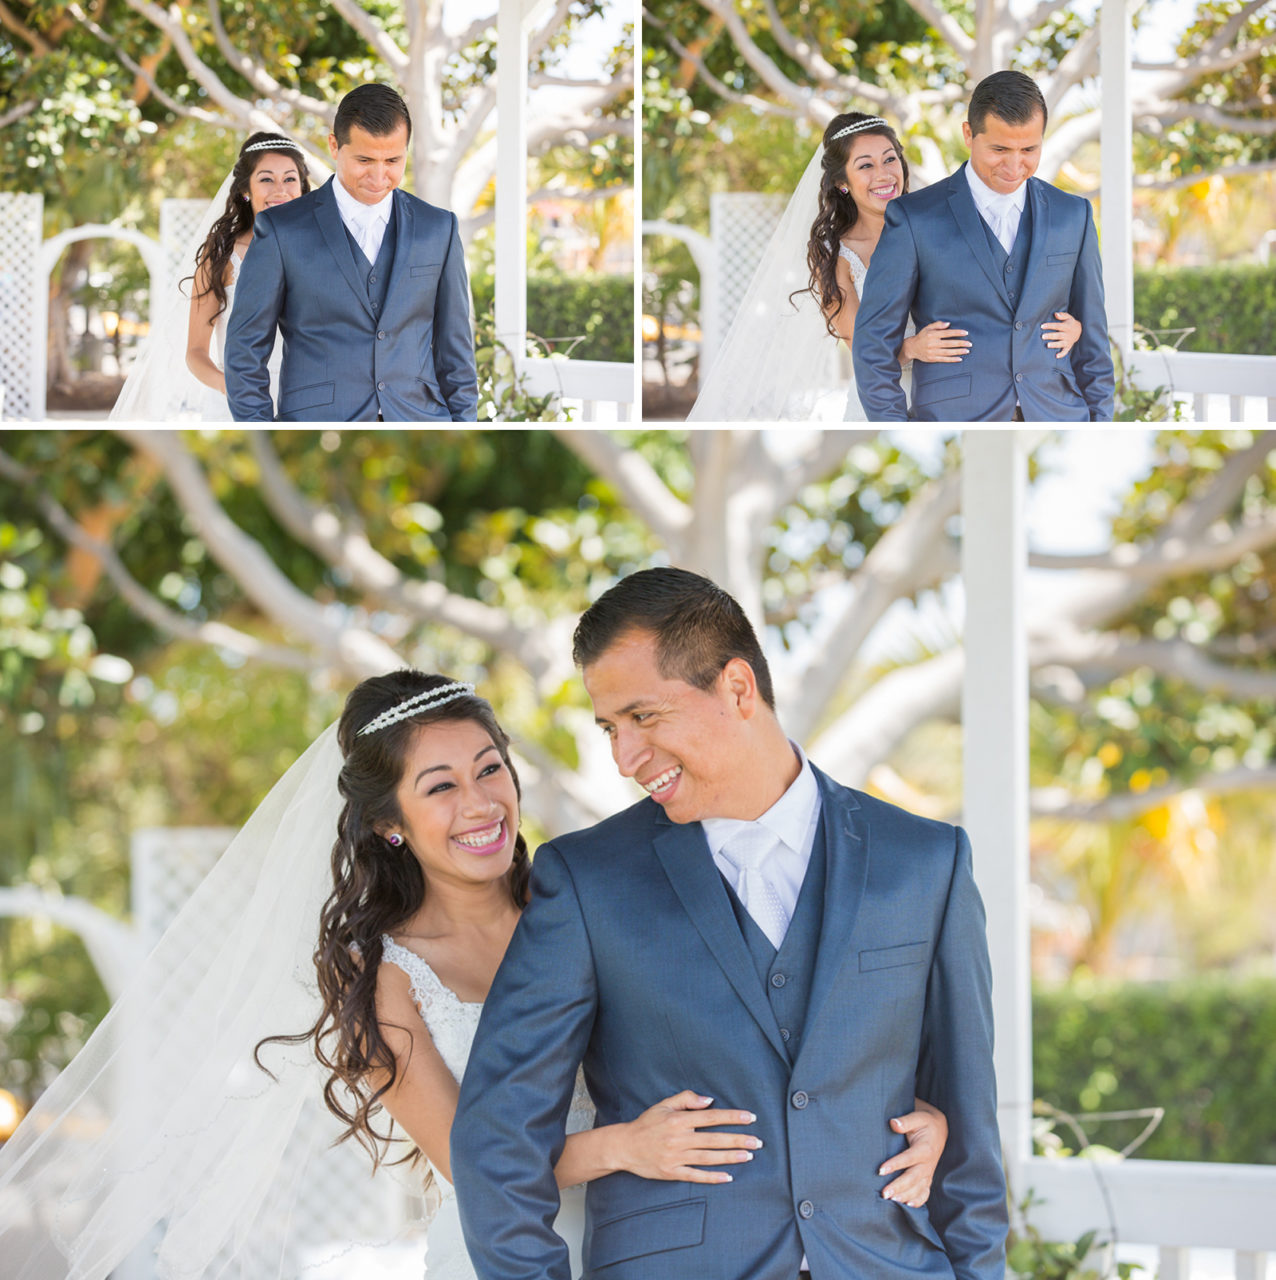 manny-pittsburgh-wedding-photographer-in-california-at-newport-beach-09